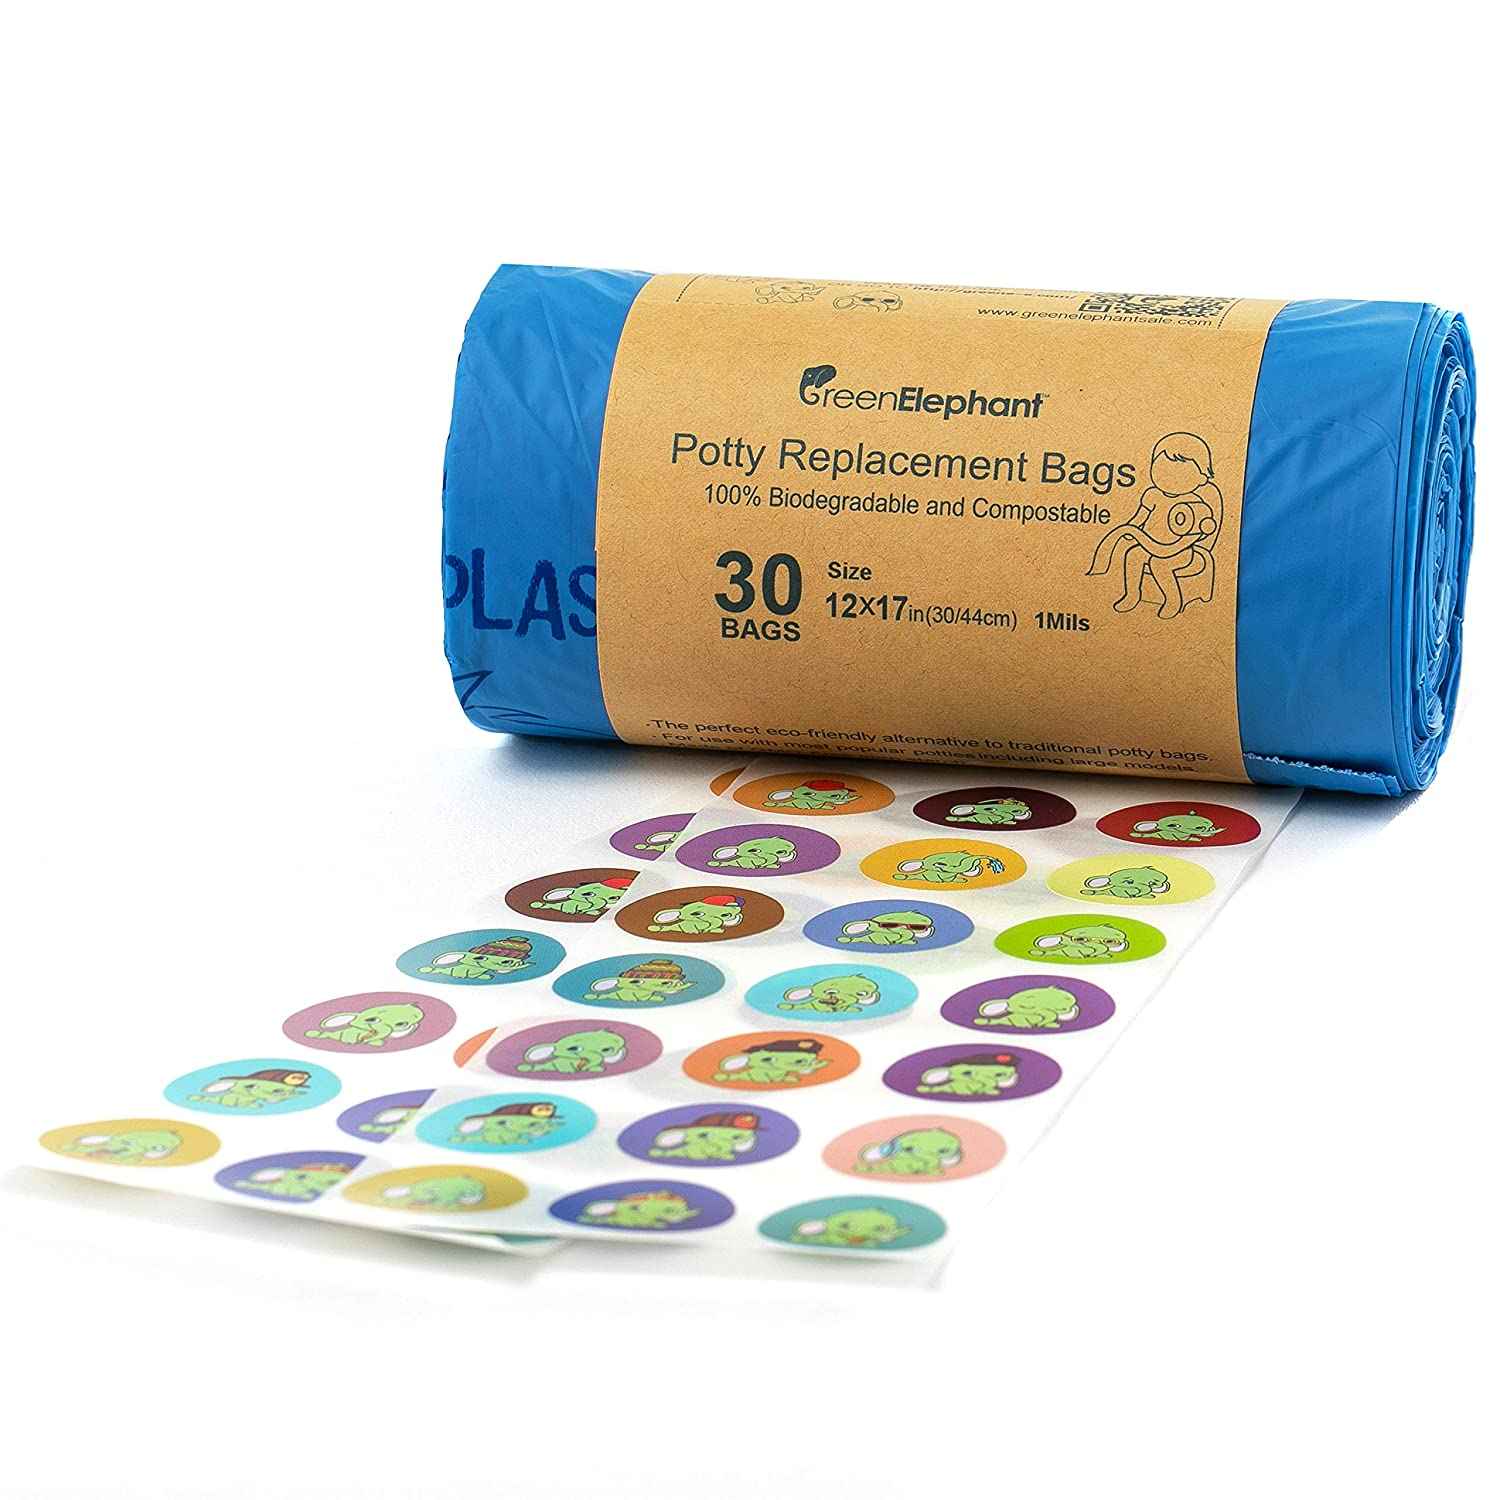 ASTM D6400 and VINCOTTE OK Compost Certified by Green Elephant Universal Fit 30 Count Replacement Potty Liners 100/% Biodegradable Compostable Refill Training Seat Bags